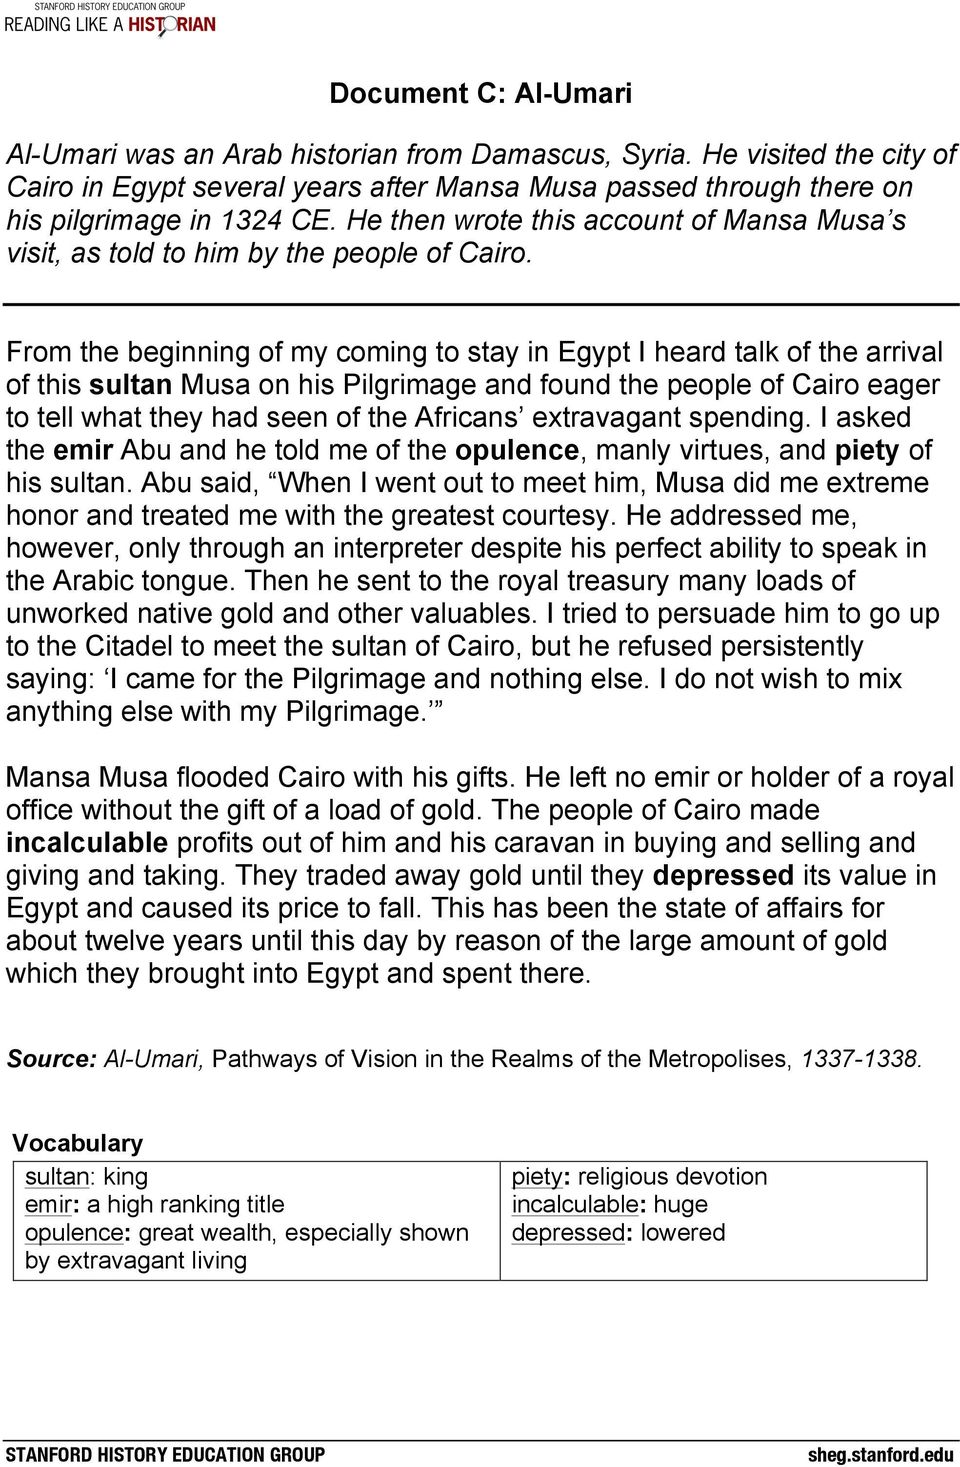 From the beginning of my coming to stay in Egypt I heard talk of the arrival of this sultan Musa on his Pilgrimage and found the people of Cairo eager to tell what they had seen of the Africans